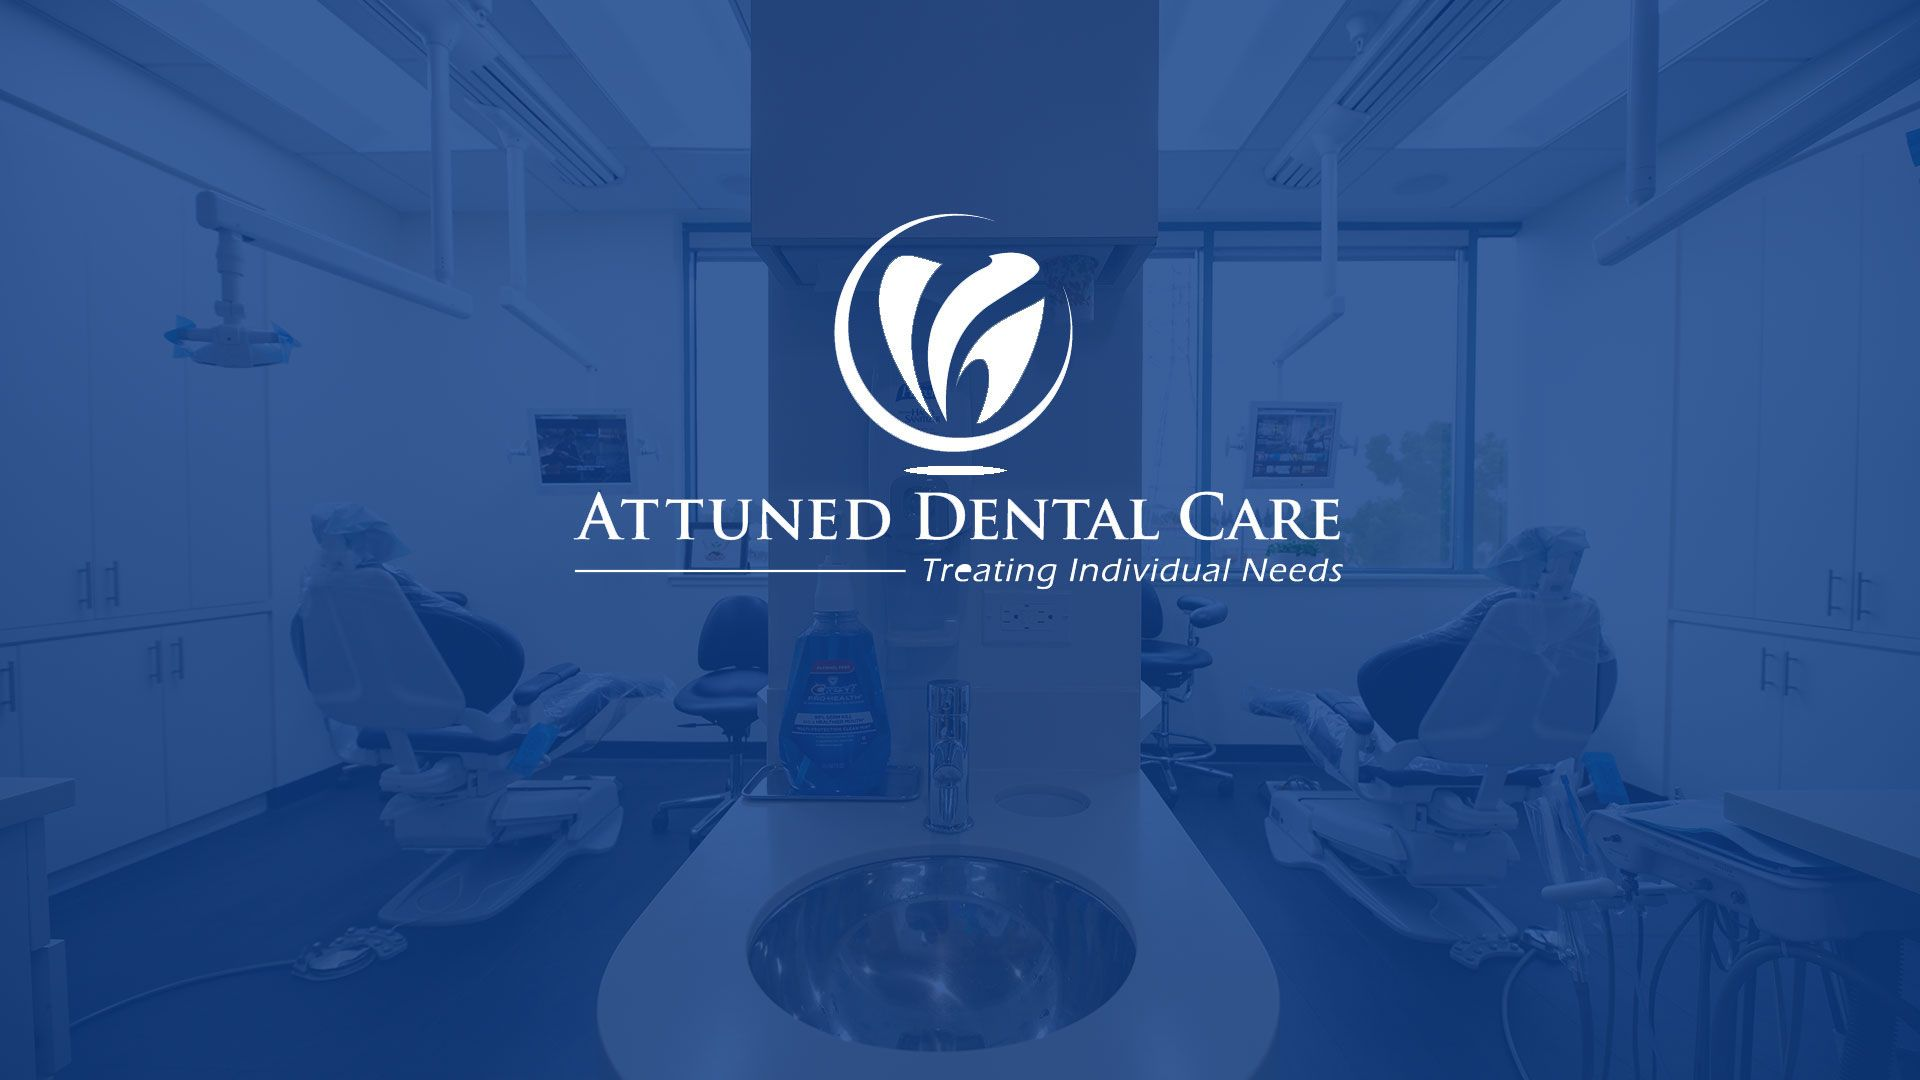 Attuned Dental Care